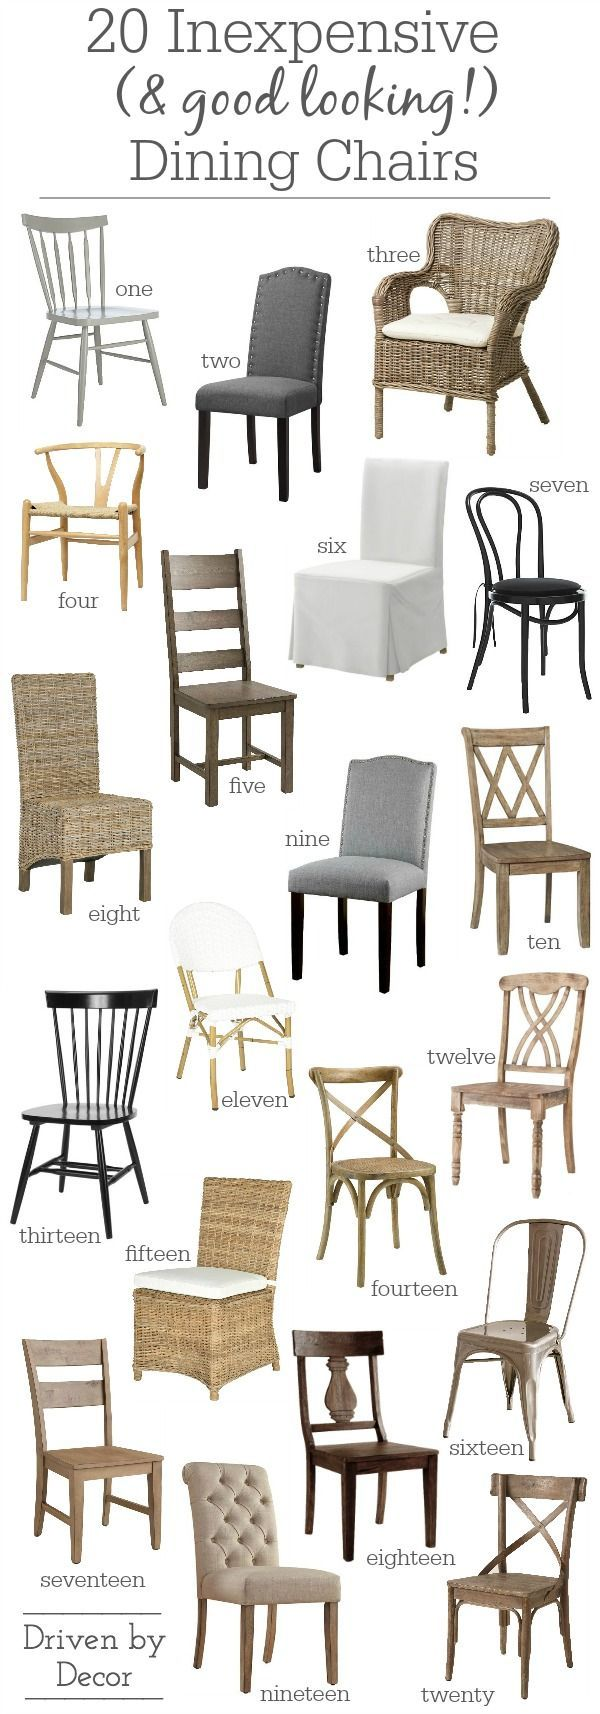 Cheap Kitchen Chairs 15 Inexpensive Dining Chairs That Don T Look Cheap Blogger